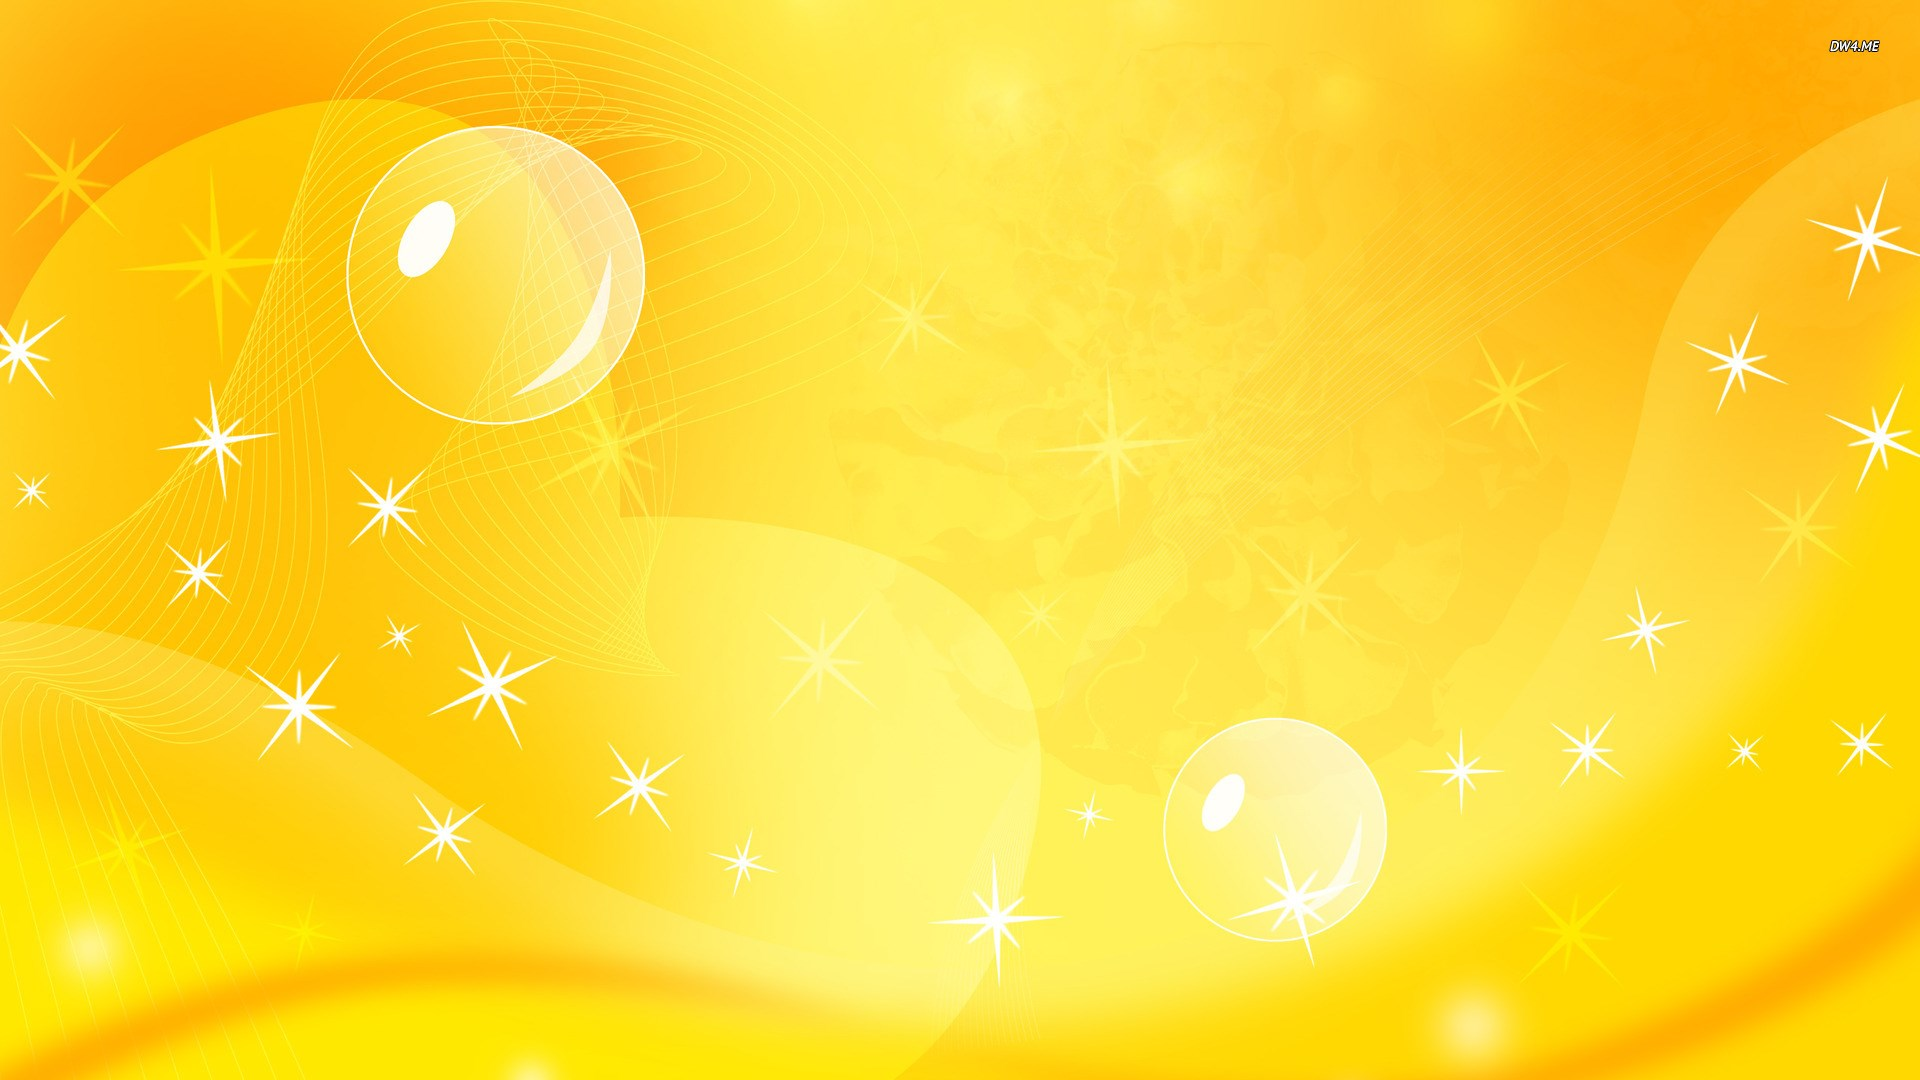 Backgrounds-In-High-Quality-yellow-pic-Stanley-Murphy-1920-x-1080-wallpaper-wp3602931